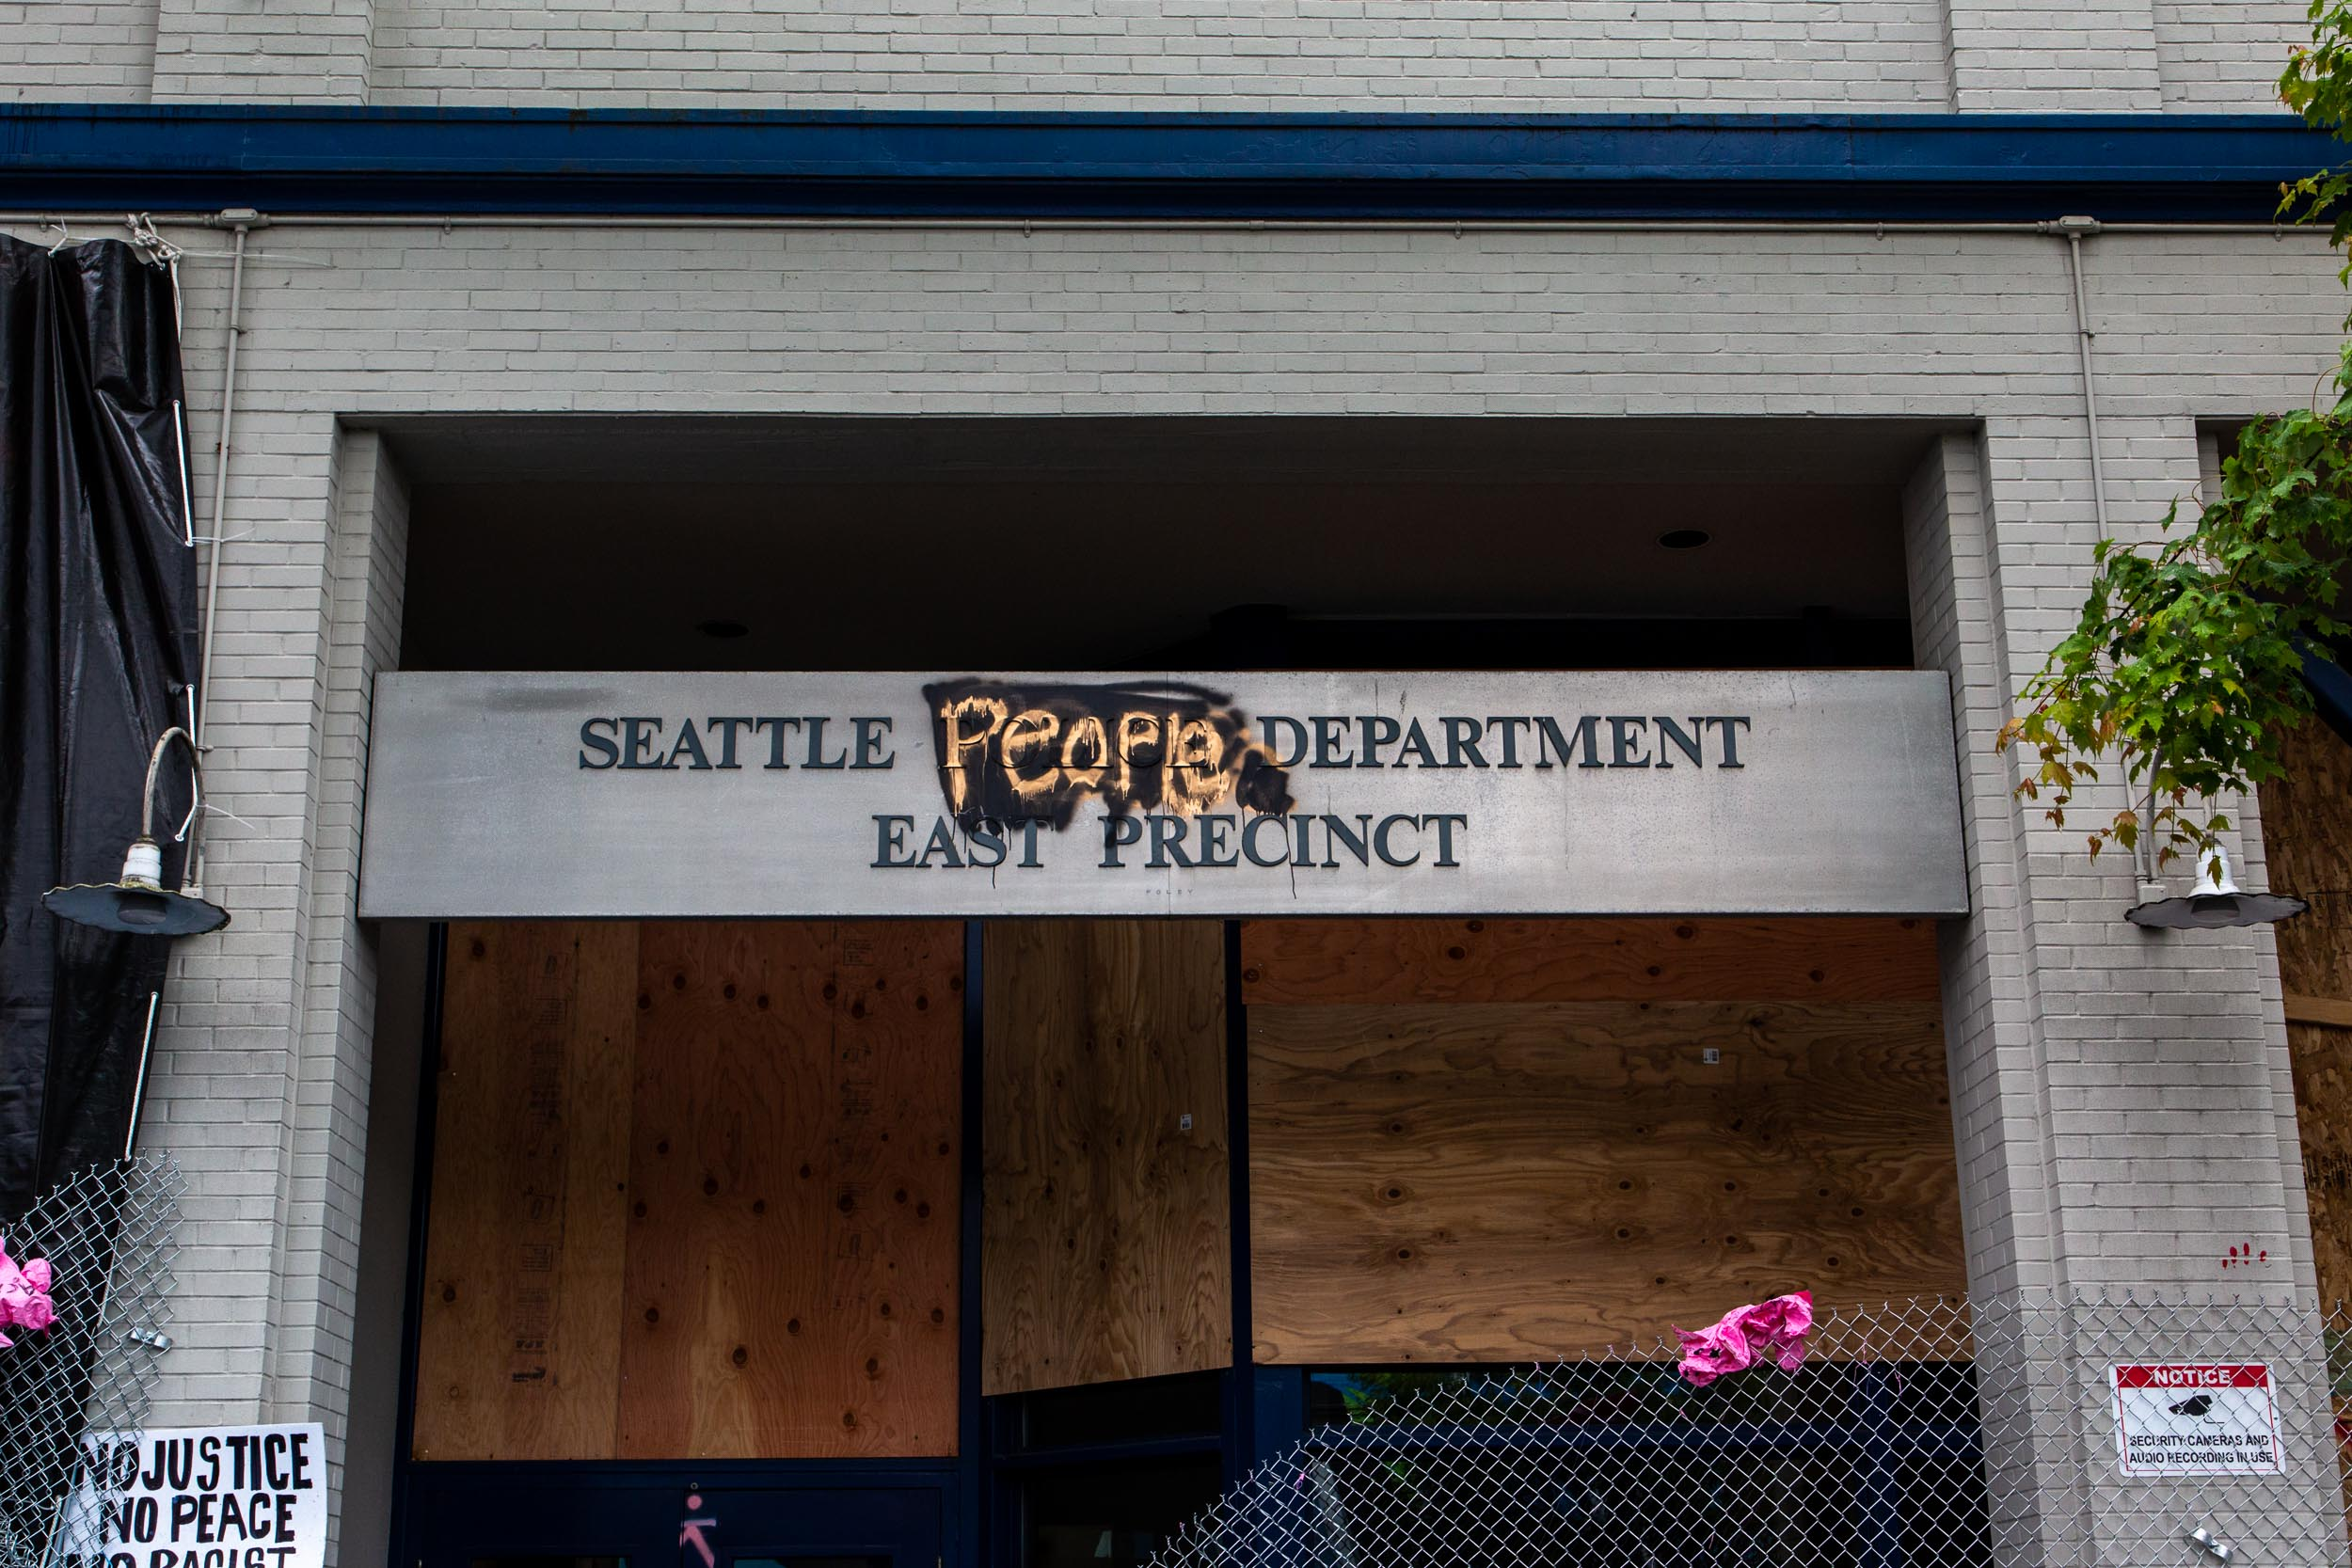 Seattle Police Department East Precinct